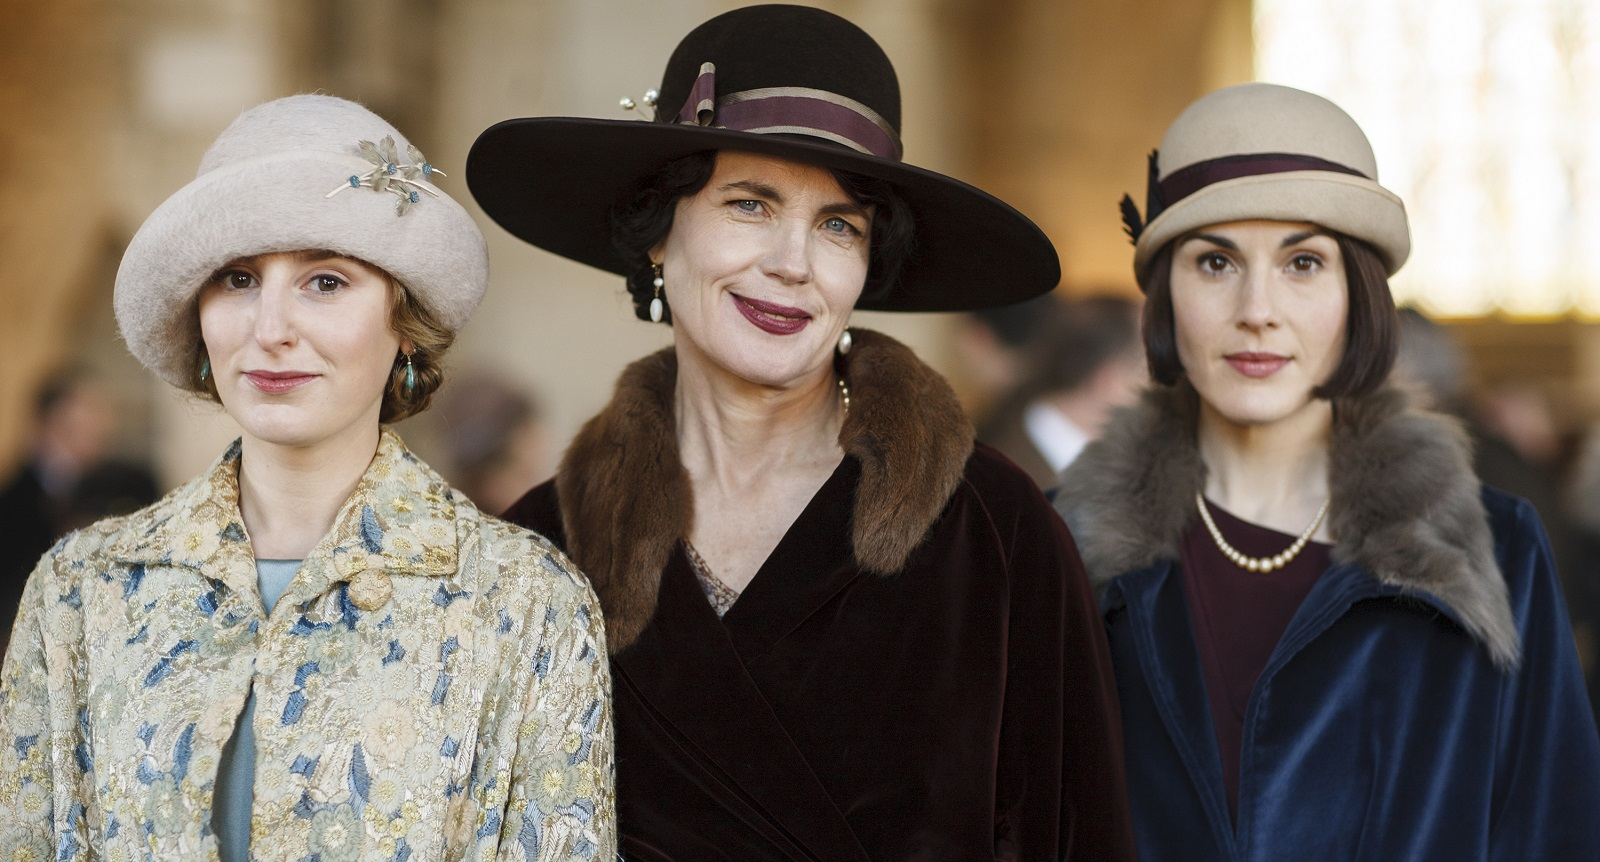 Jeff Simon reviews the soundtrack for popular TV show 'Downton Abbey,' which has concluded after a sixth and final season.